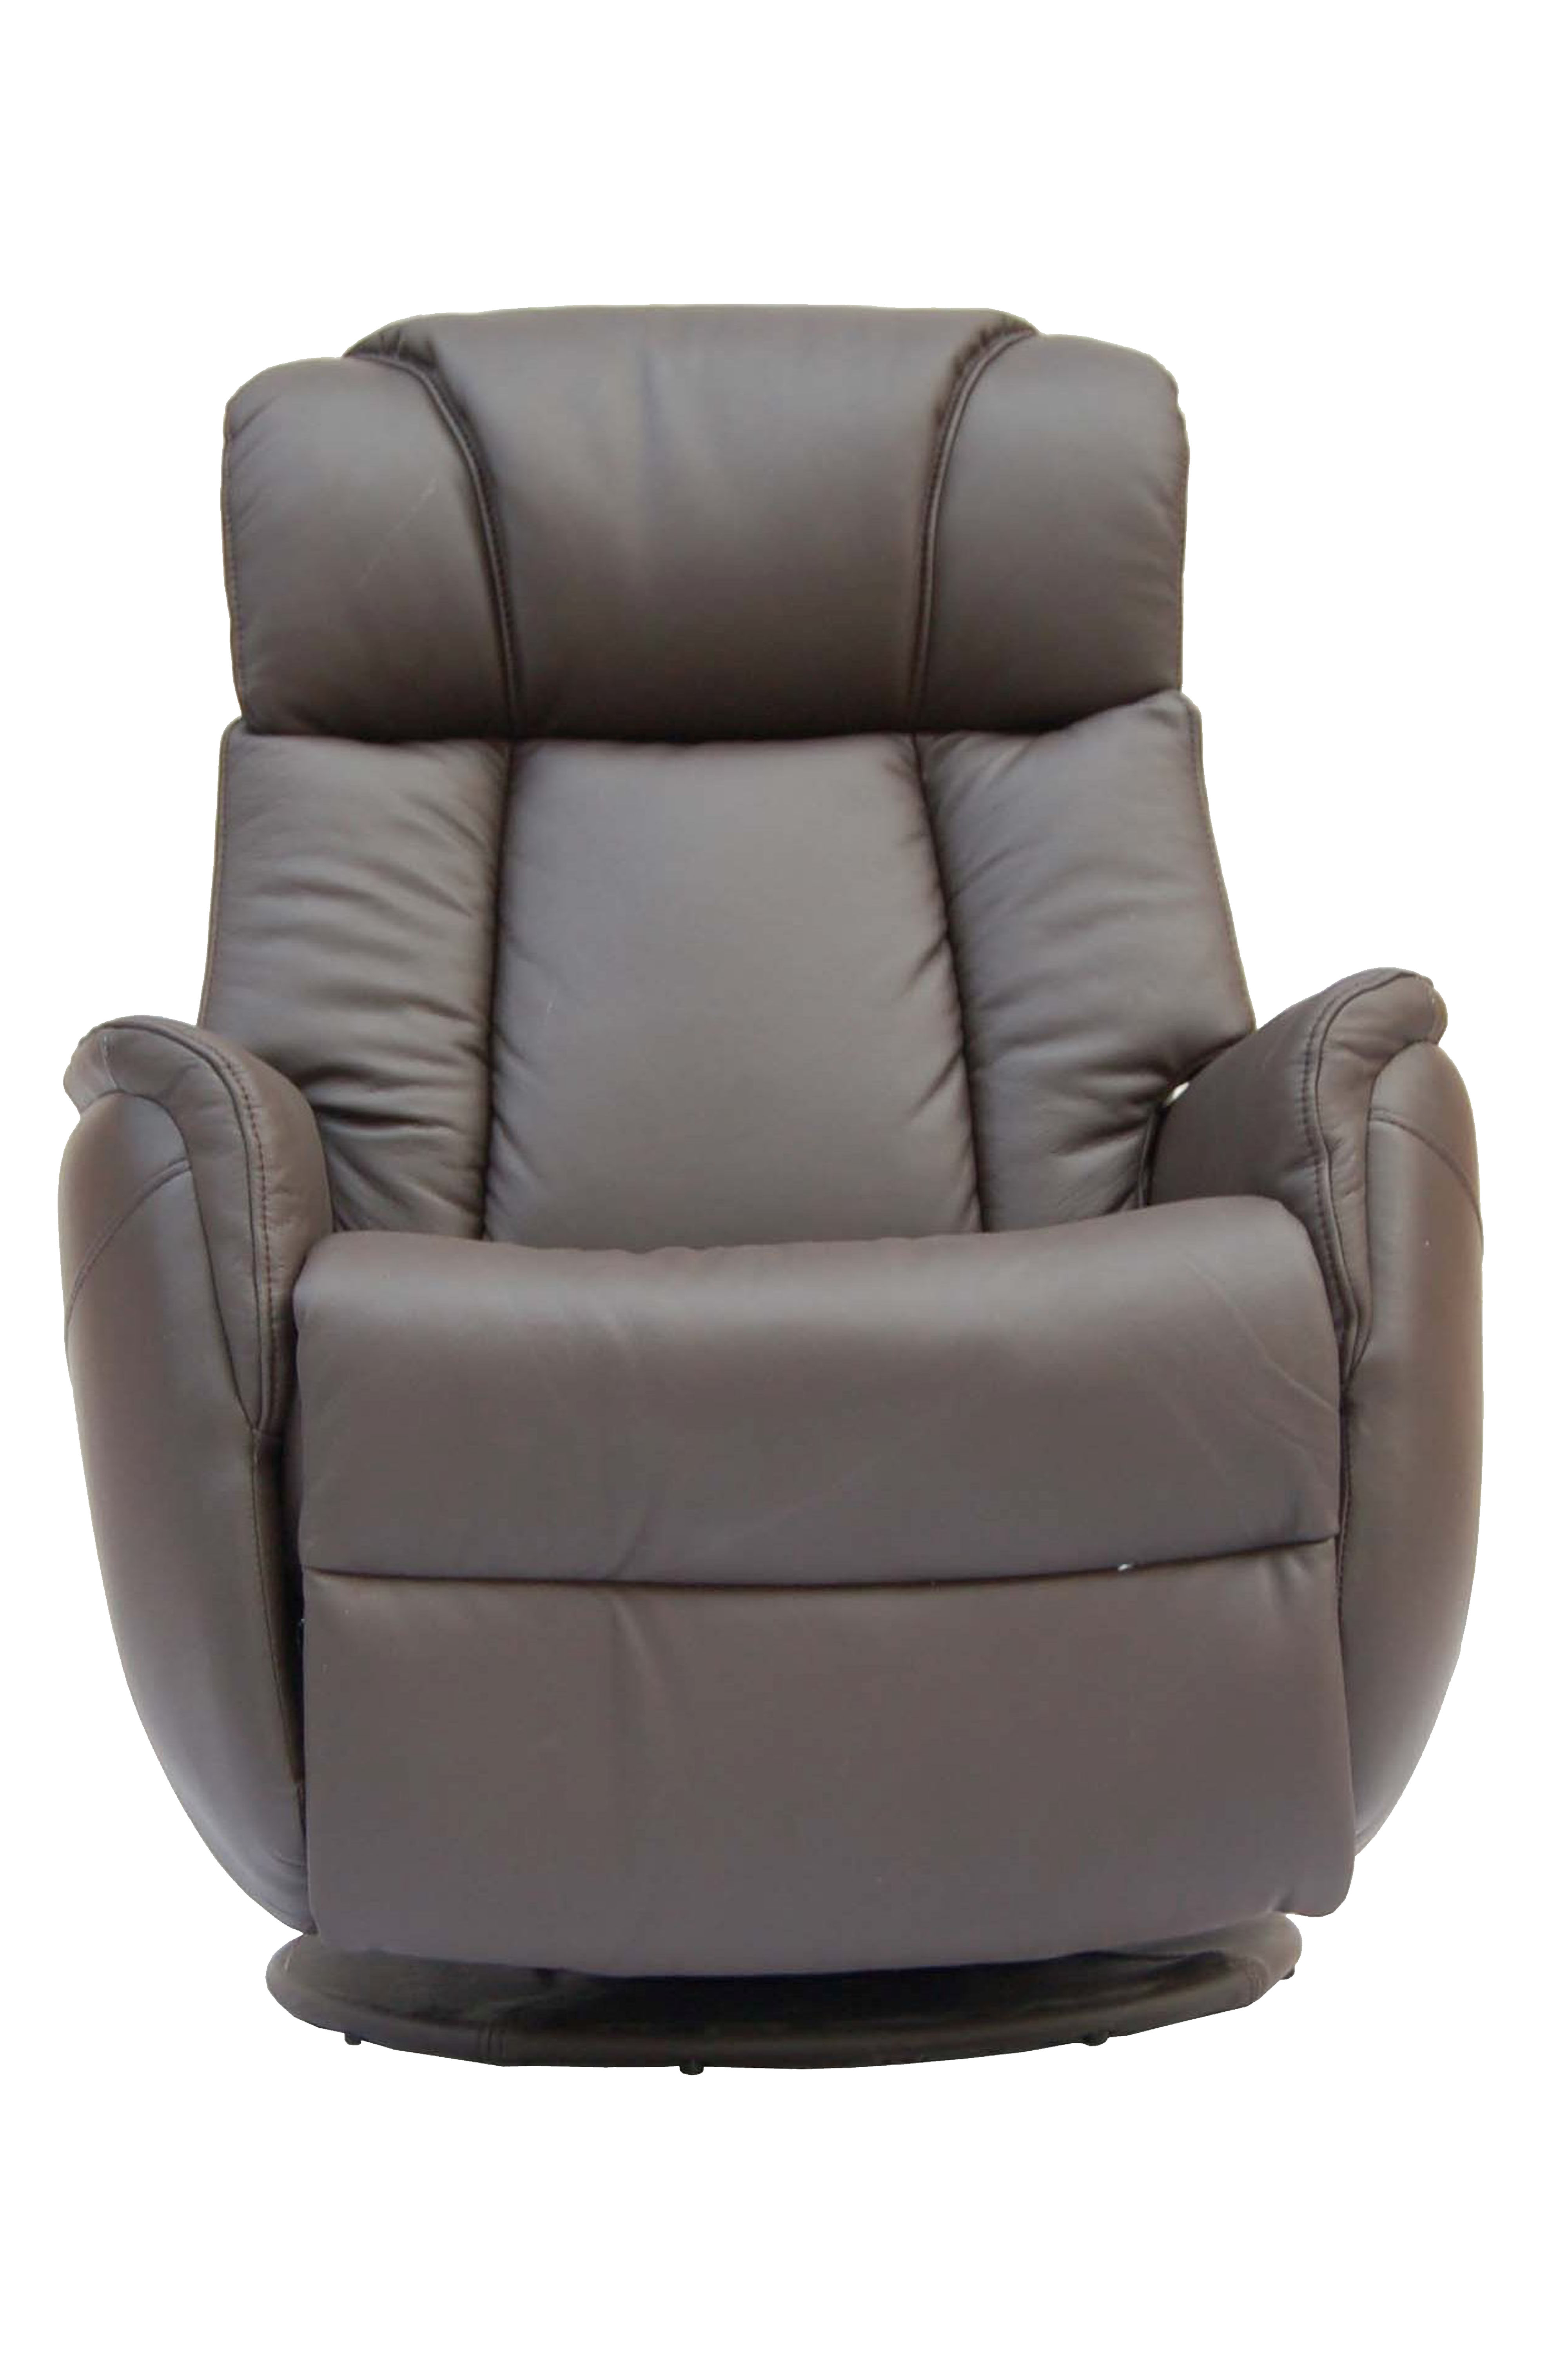 Gfa Sorrento Electric Rock & Swivel Leather Recliner Chair – Espresso Inside Espresso Leather Swivel Chairs (View 8 of 25)